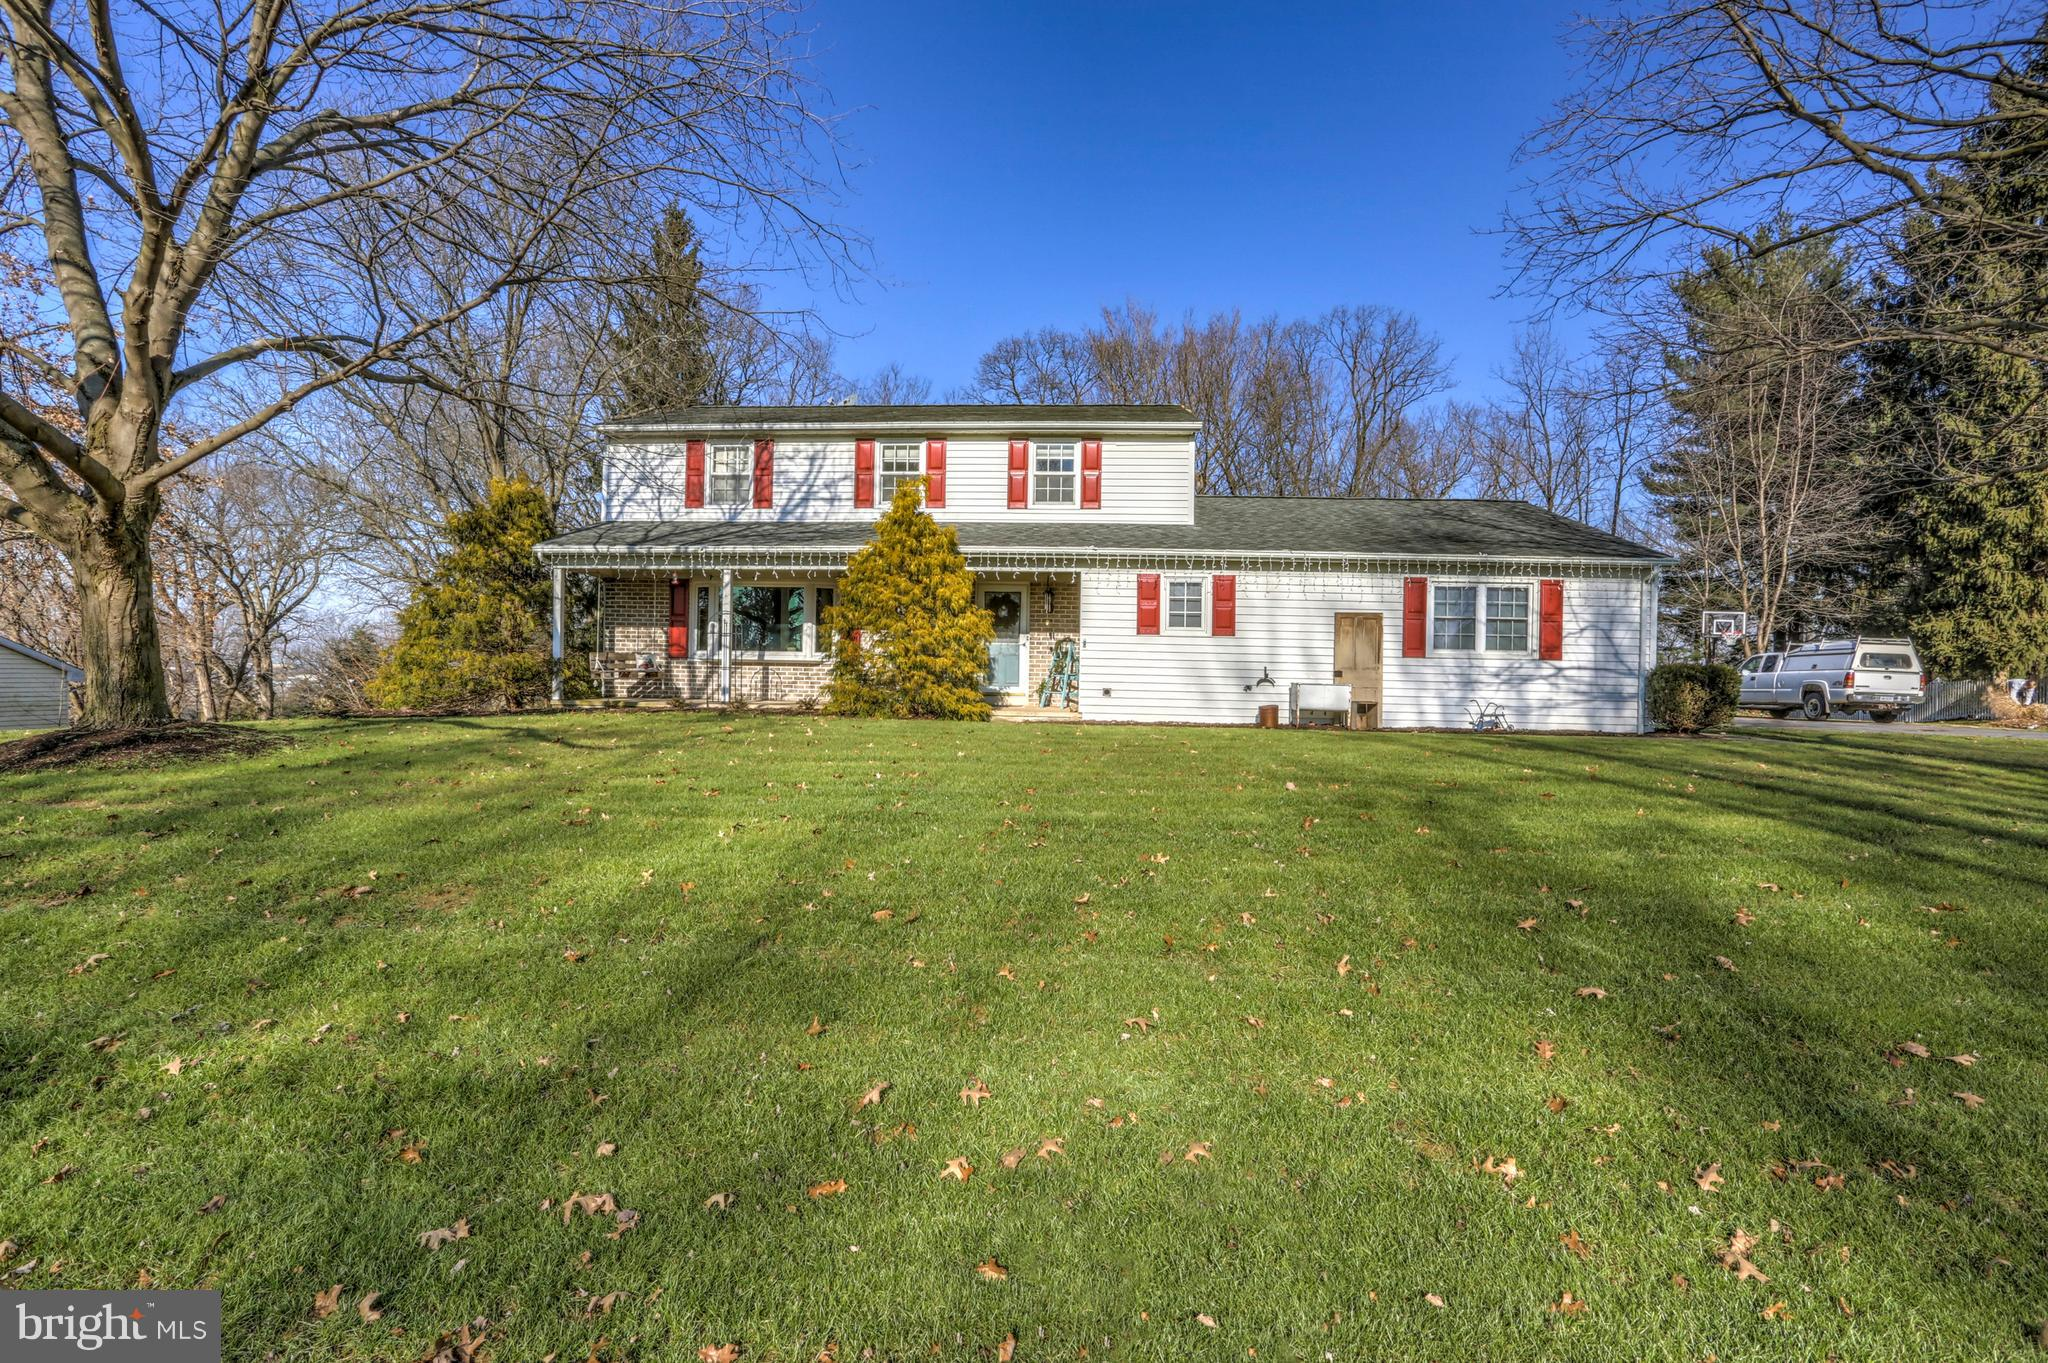 127 CINDALYN DRIVE, NEW HOLLAND, PA 17557